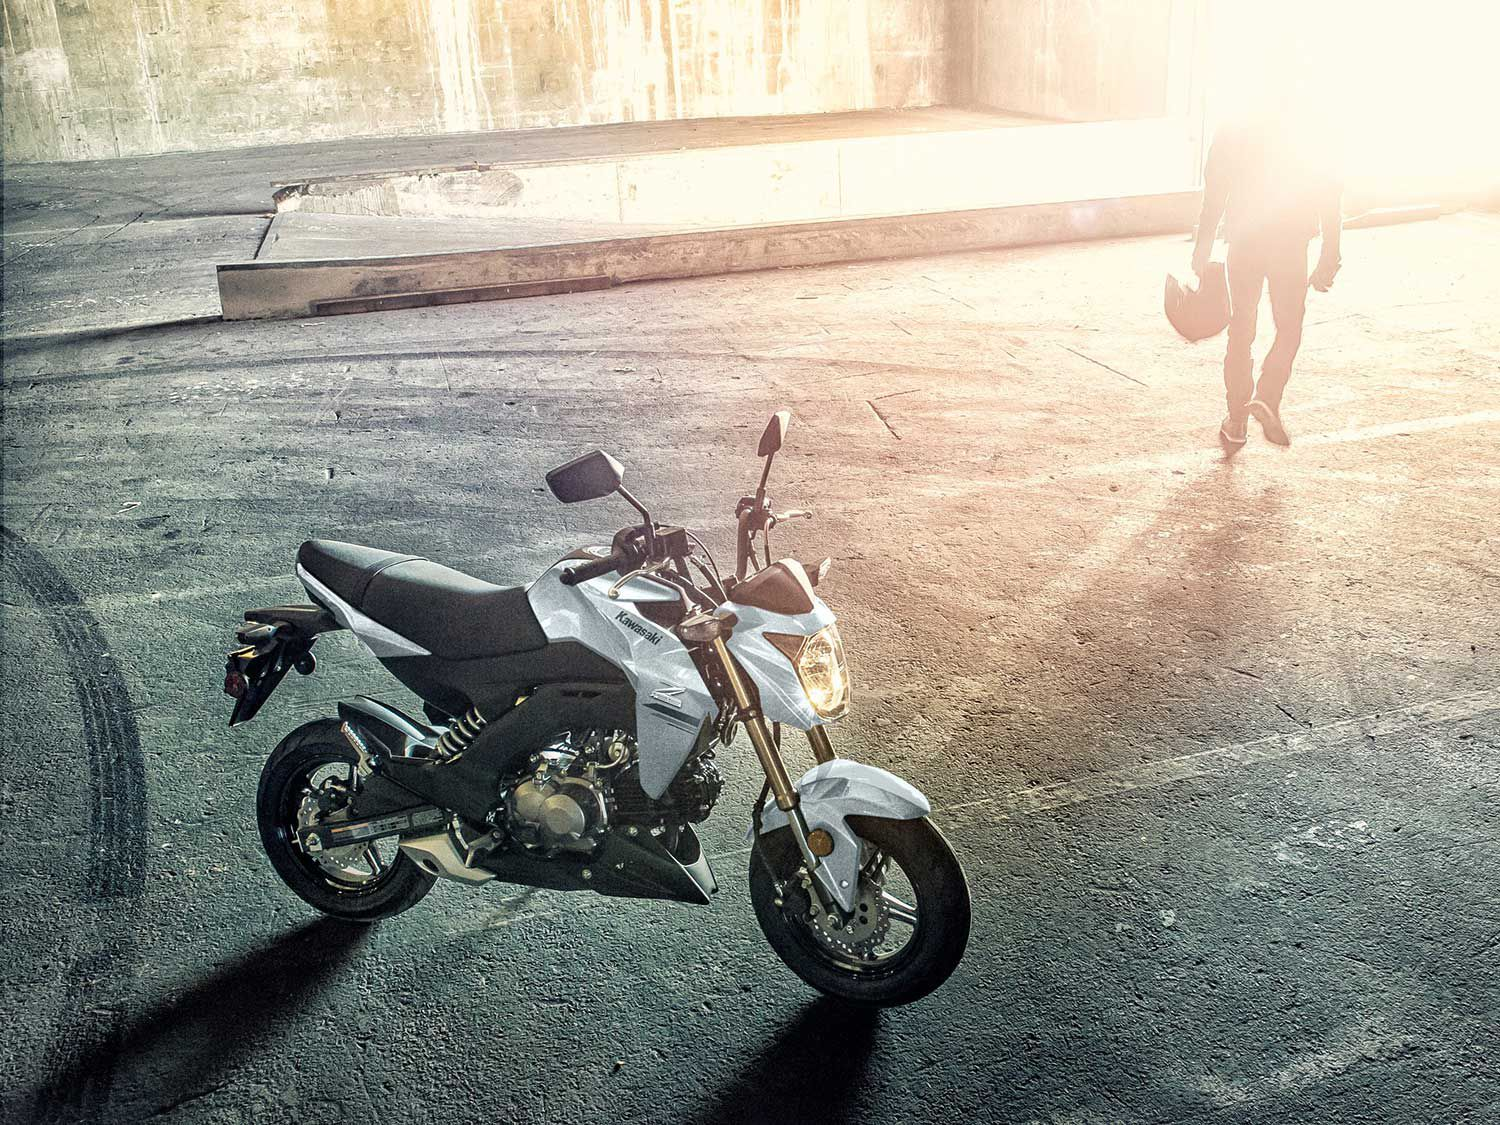 Big fun comes in a small package with the Kawasaki Z125 Pro.